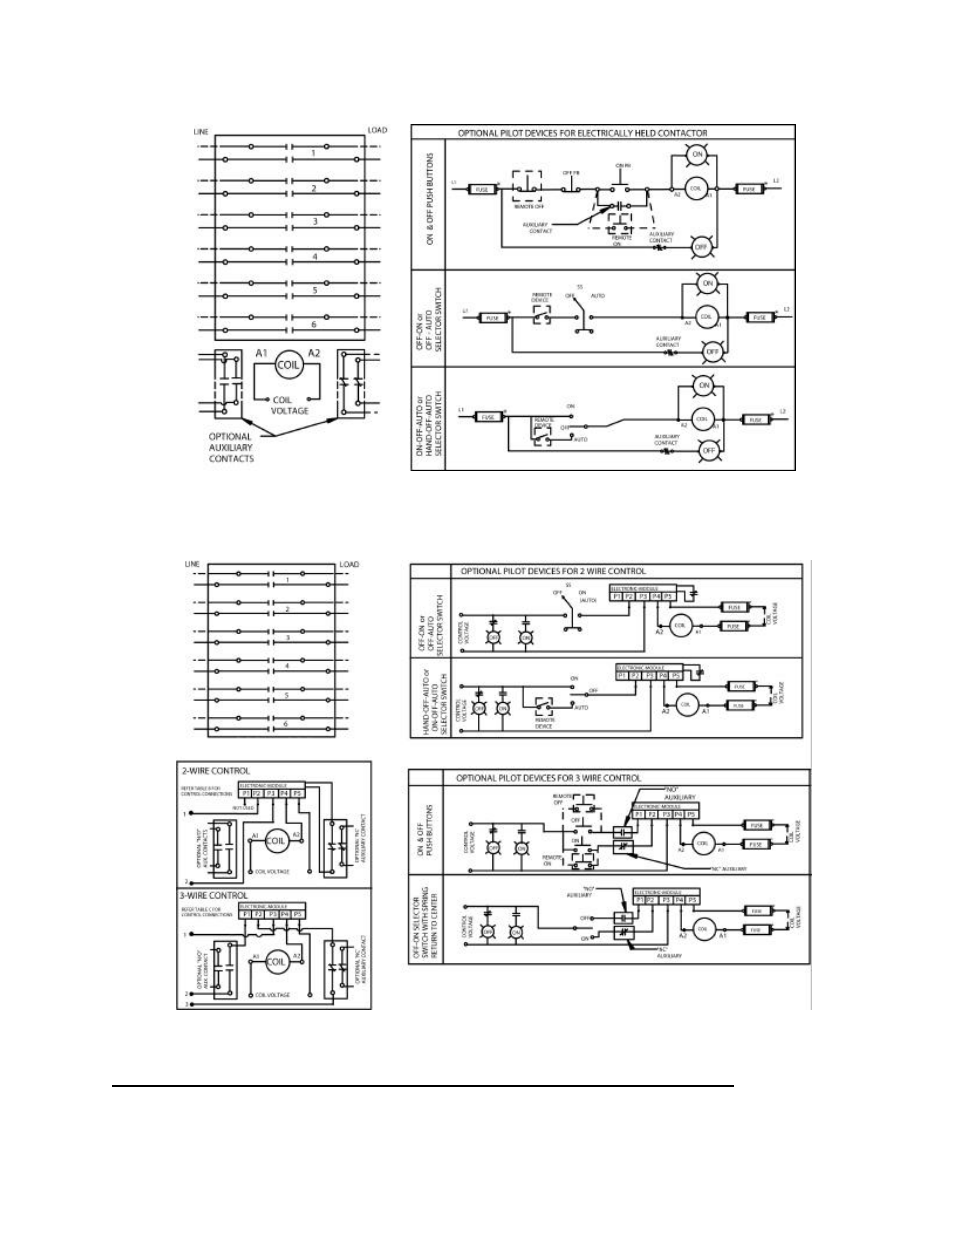 ge lighting wiring diagram wiring diagrams rh boltsoft net GE Washing Machine Diagram GE Refrigerator Wiring Schematic